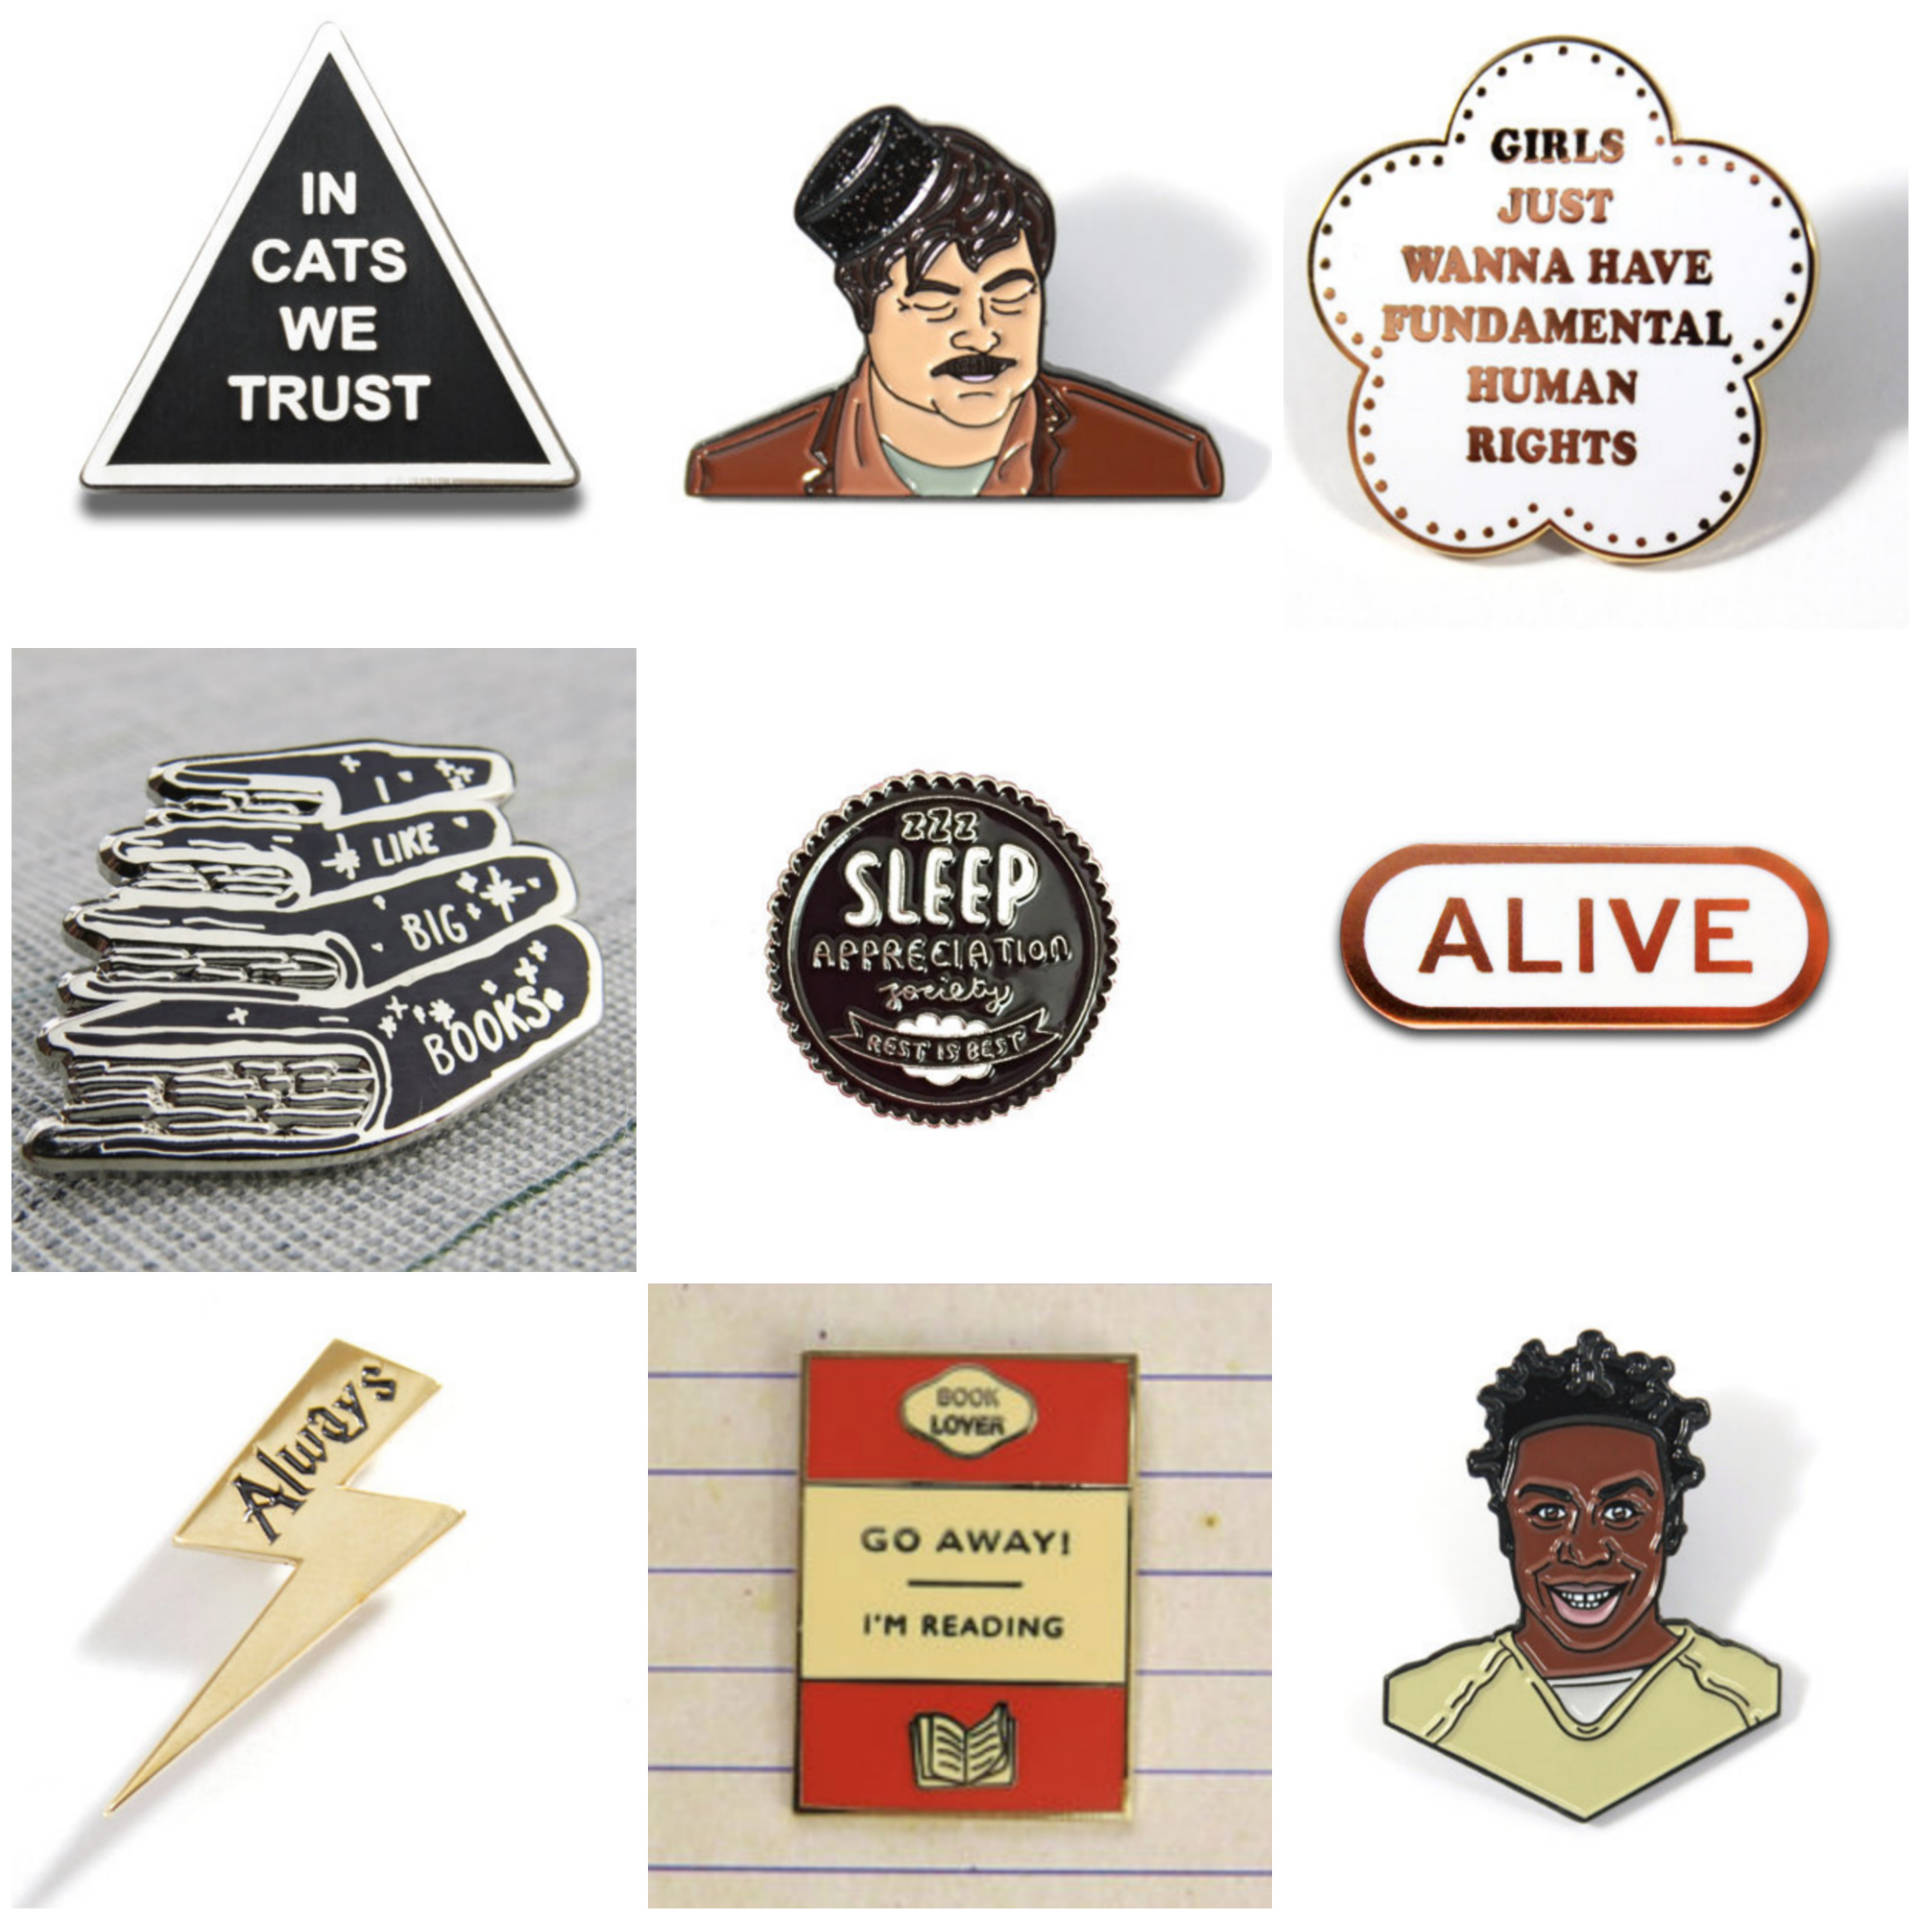 enamel-pins-pin-club-veronica-dearly-parks-and-rec-recreation-cats-orange-is-the-new-black